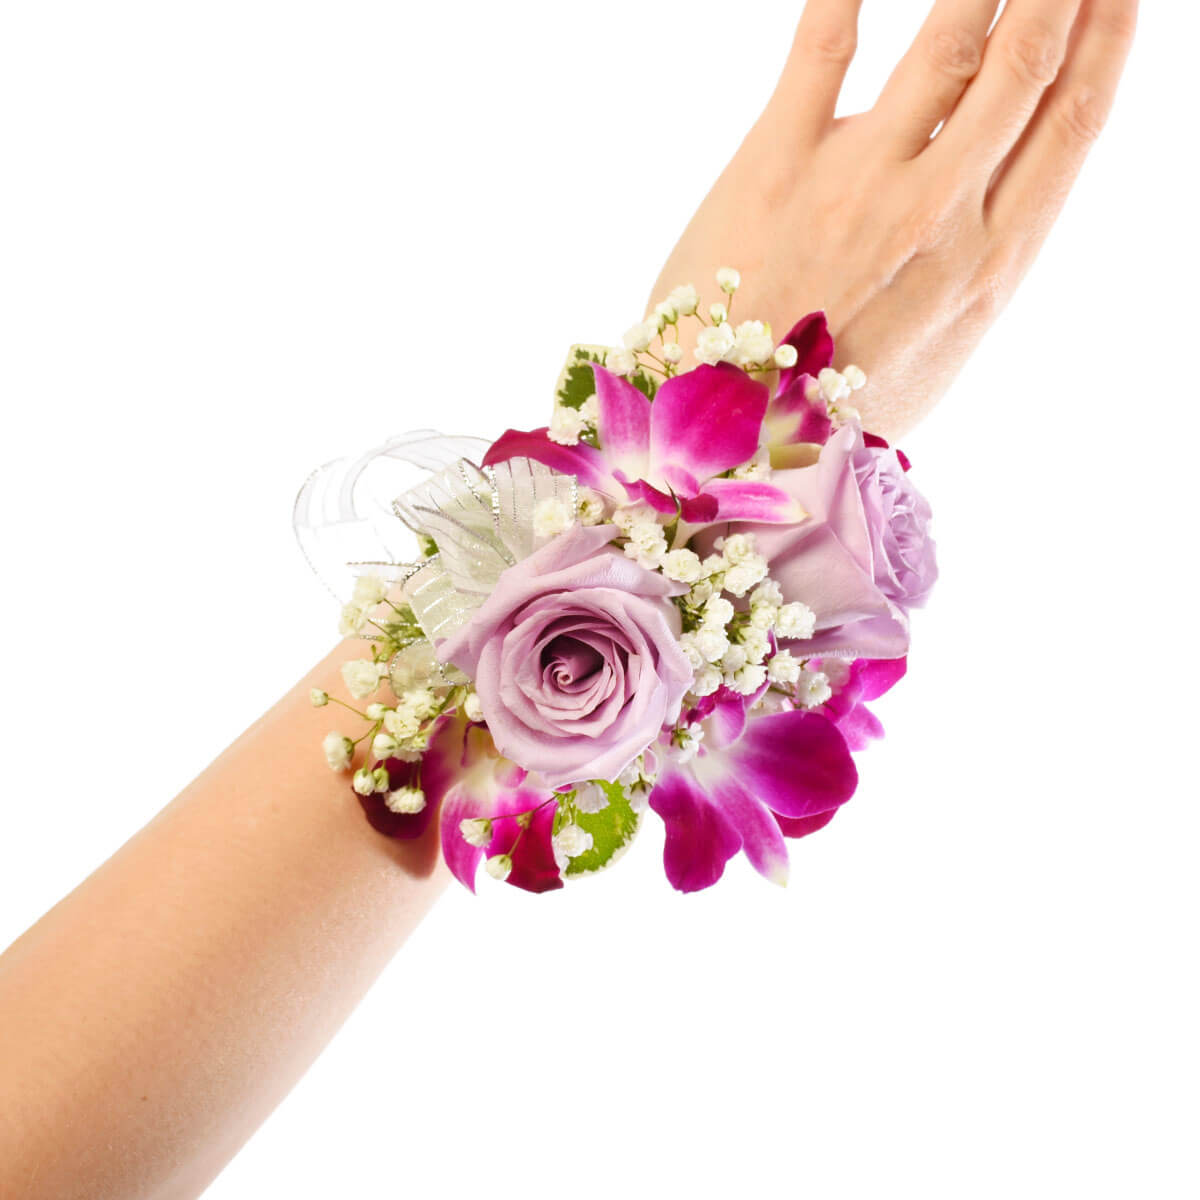 Luxury Prom and Wedding wrist corsage for delivery to Burnaby, Vancouver, Coquitlam and North Van. | Local Florist in Burnaby Adele Rae Florists.